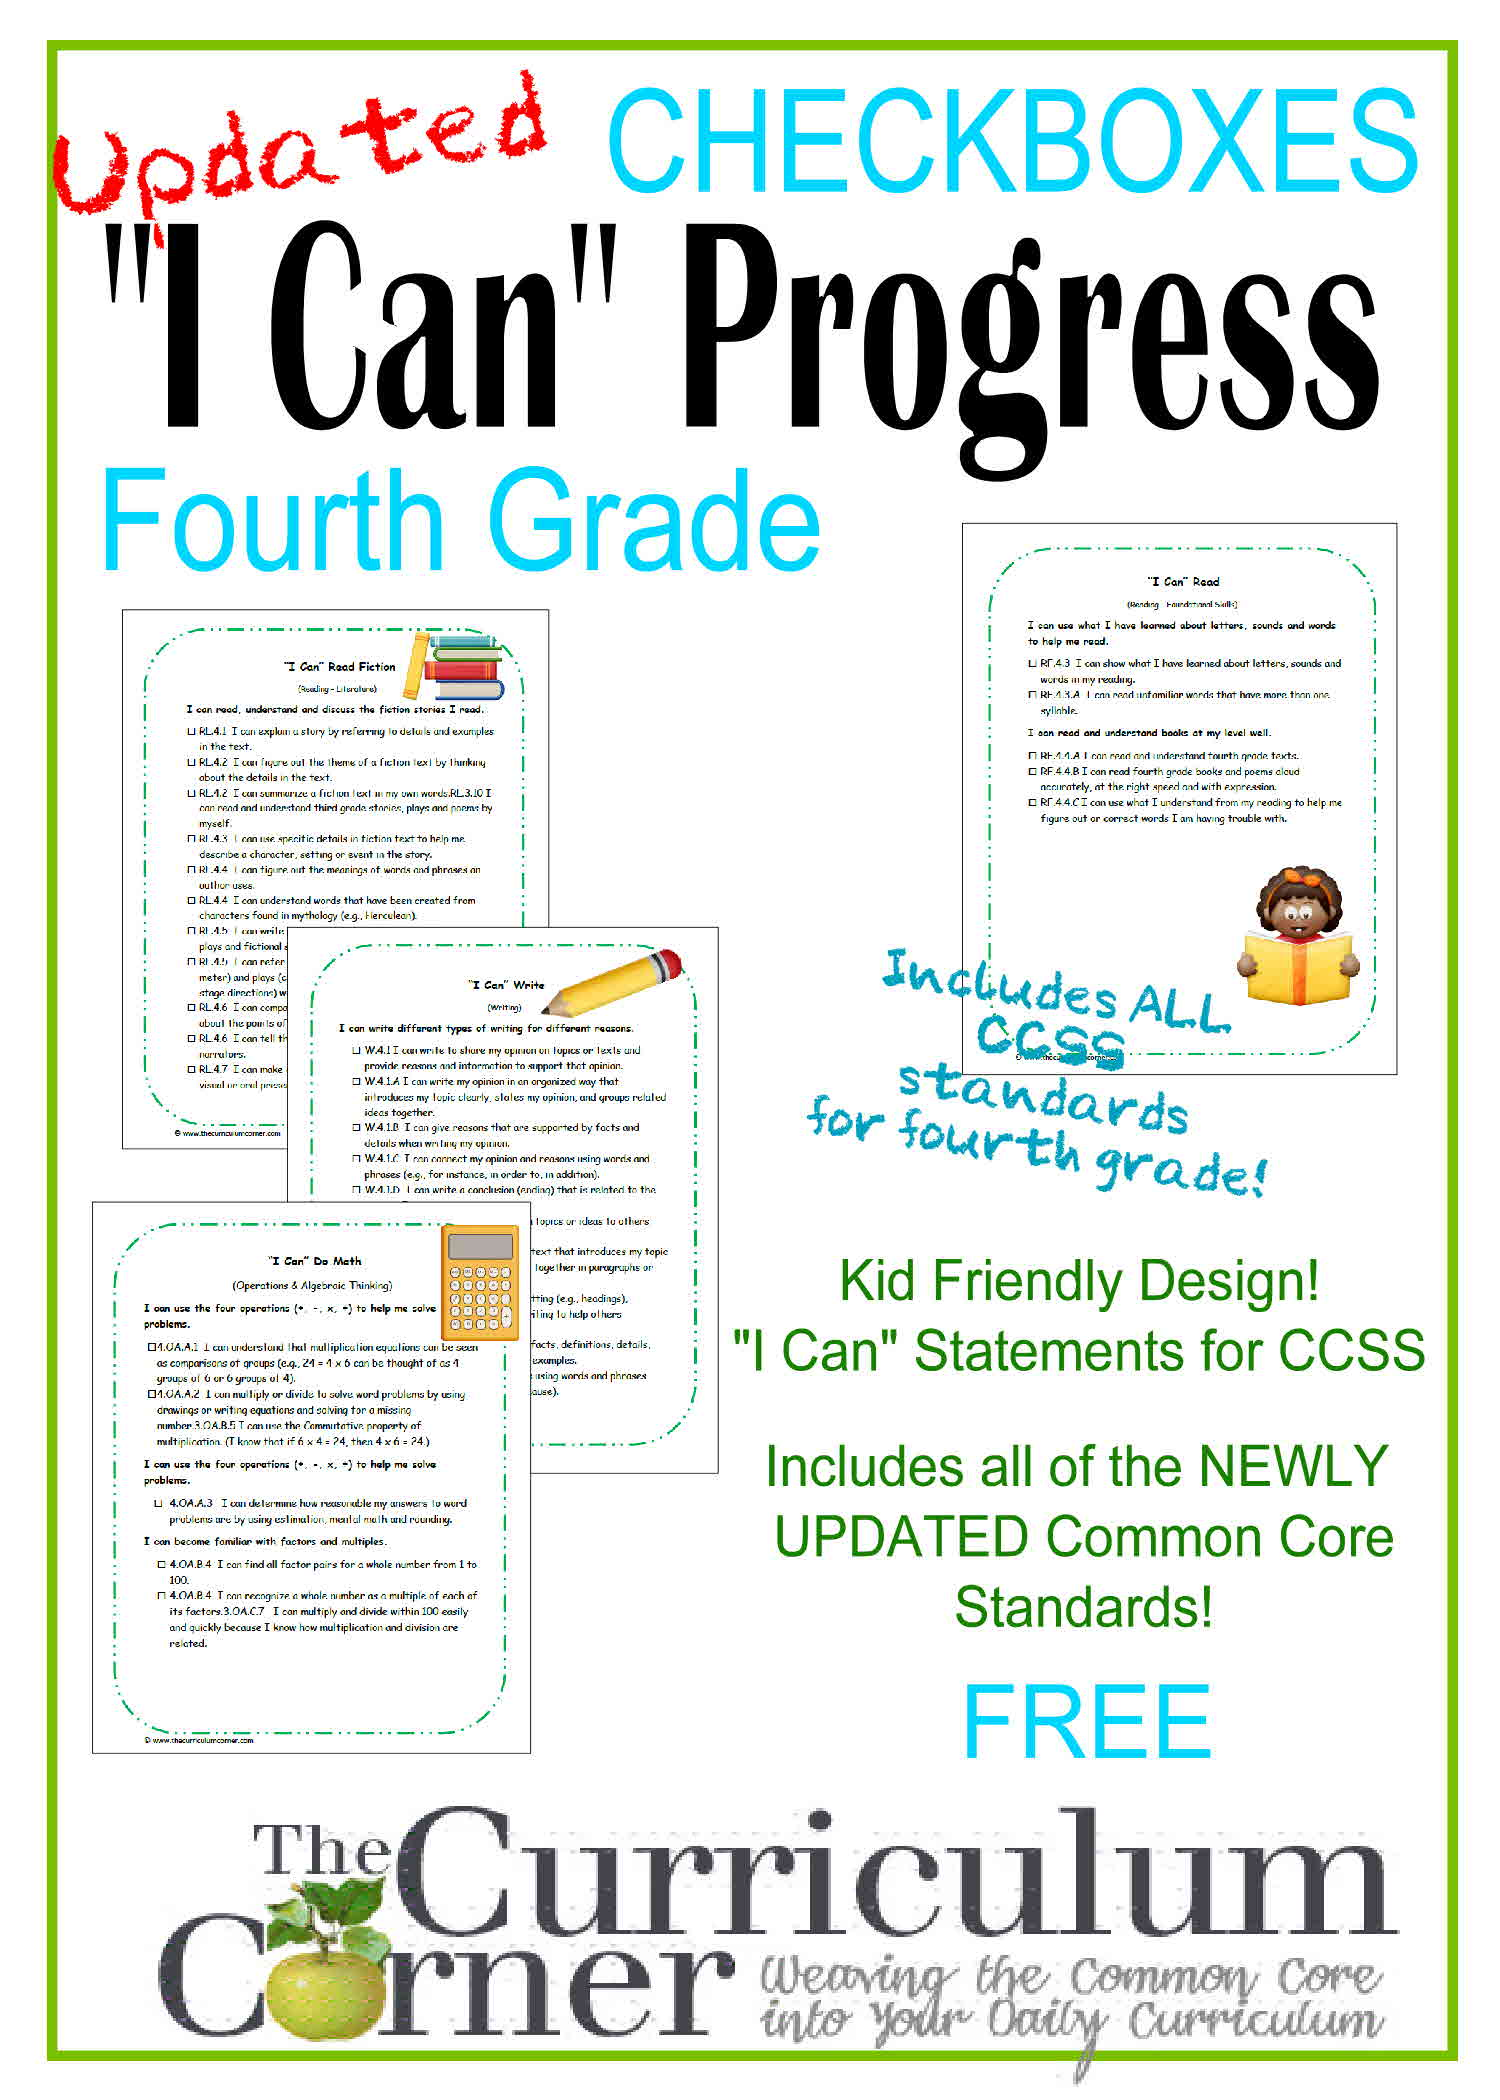 Kid Clip Art I Can Statements 4th Grade CCSS Checkboxes.